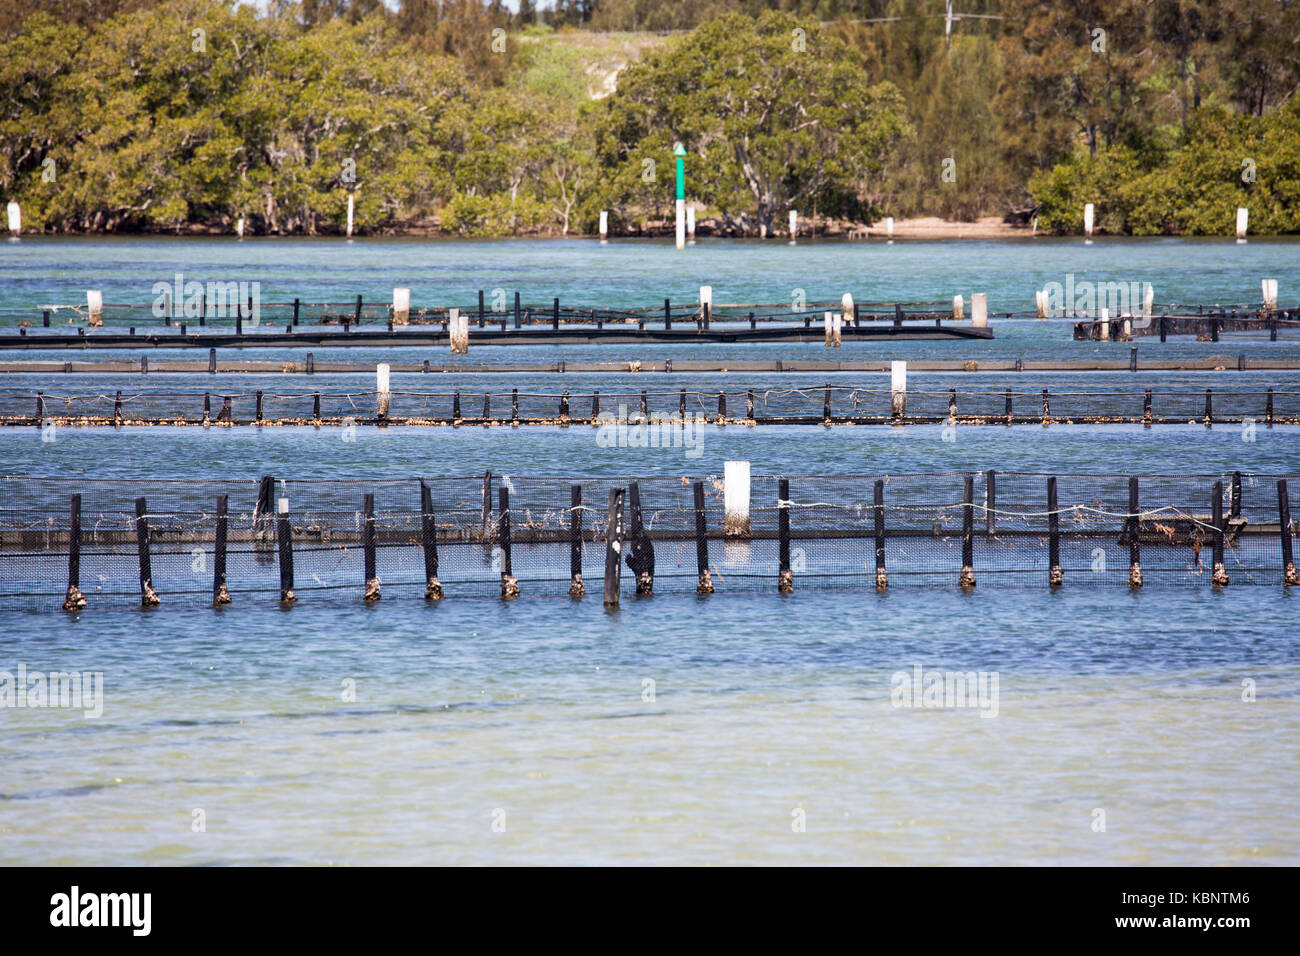 Oyster beds for farming Oysters in Wallis Lake at Forster, a key sourc eof Sydney Rock Oysters,New South Wales,Australia - Stock Image